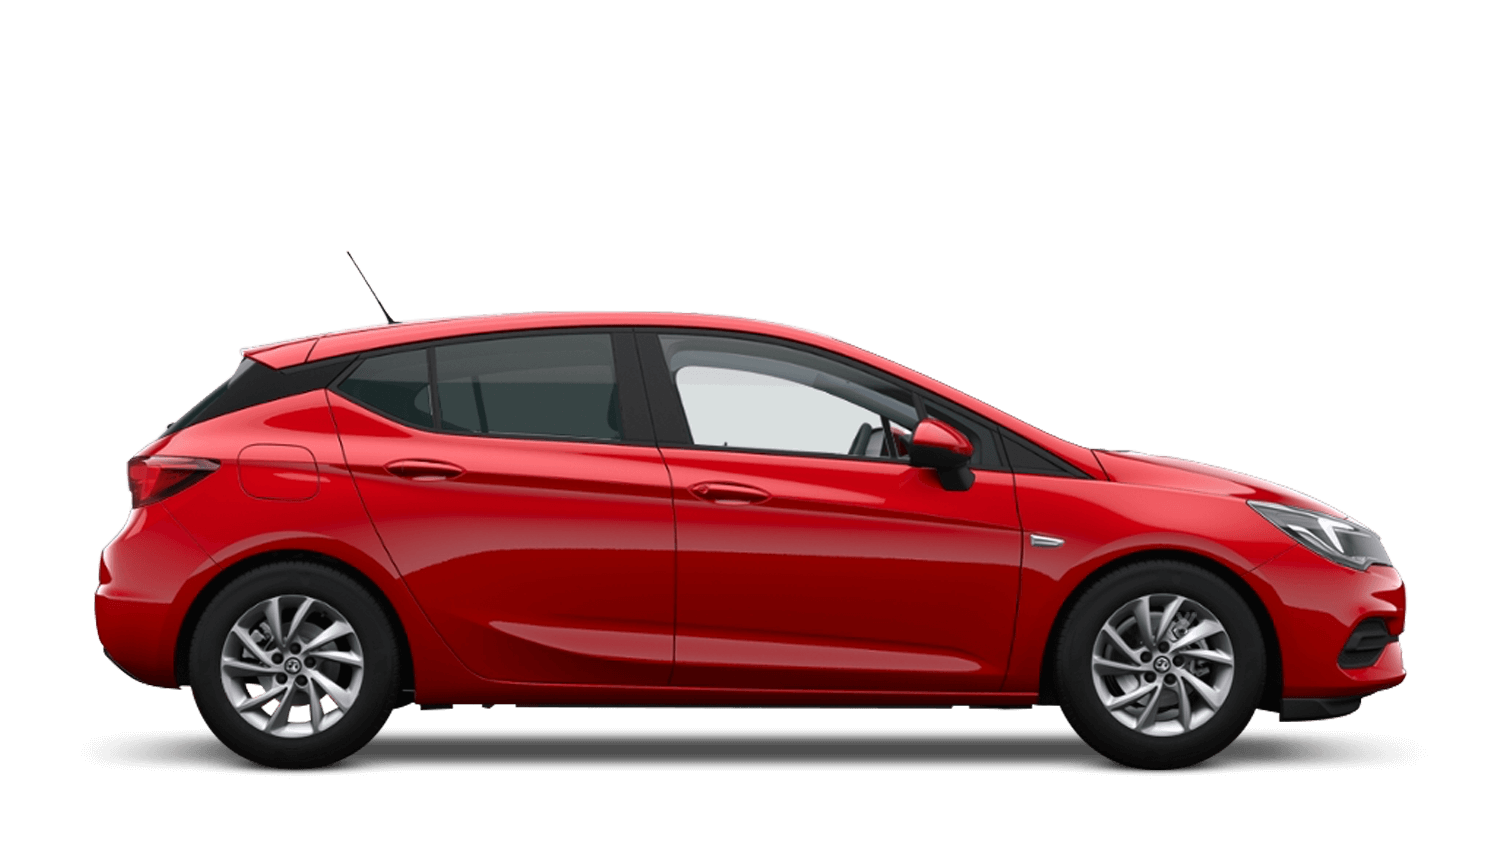 Lava Red (Brilliant) New Vauxhall Astra